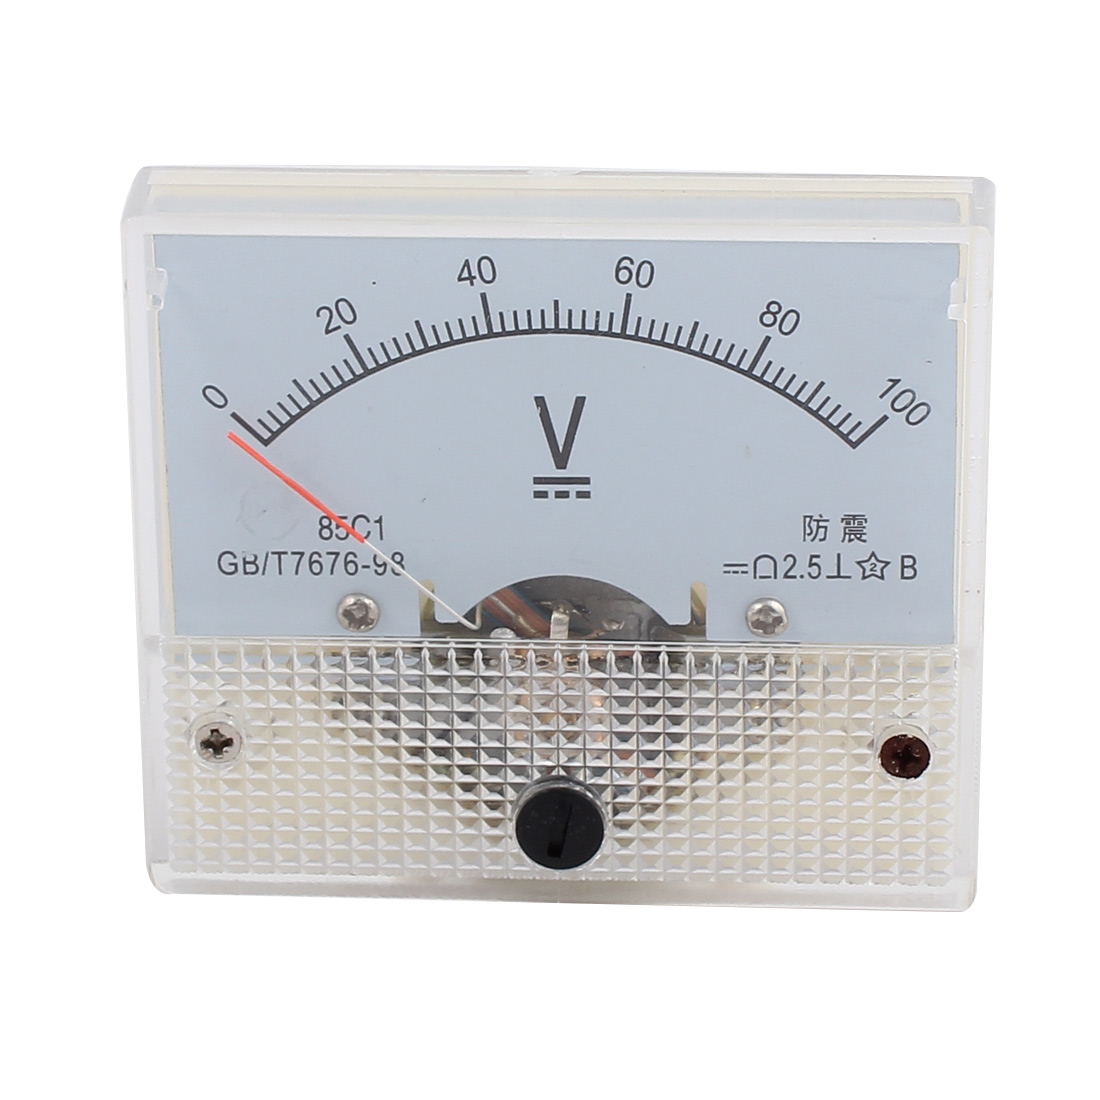 DC 0-100V Analog Volt Voltage Panel Meter Voltmeter Gauge 85C1